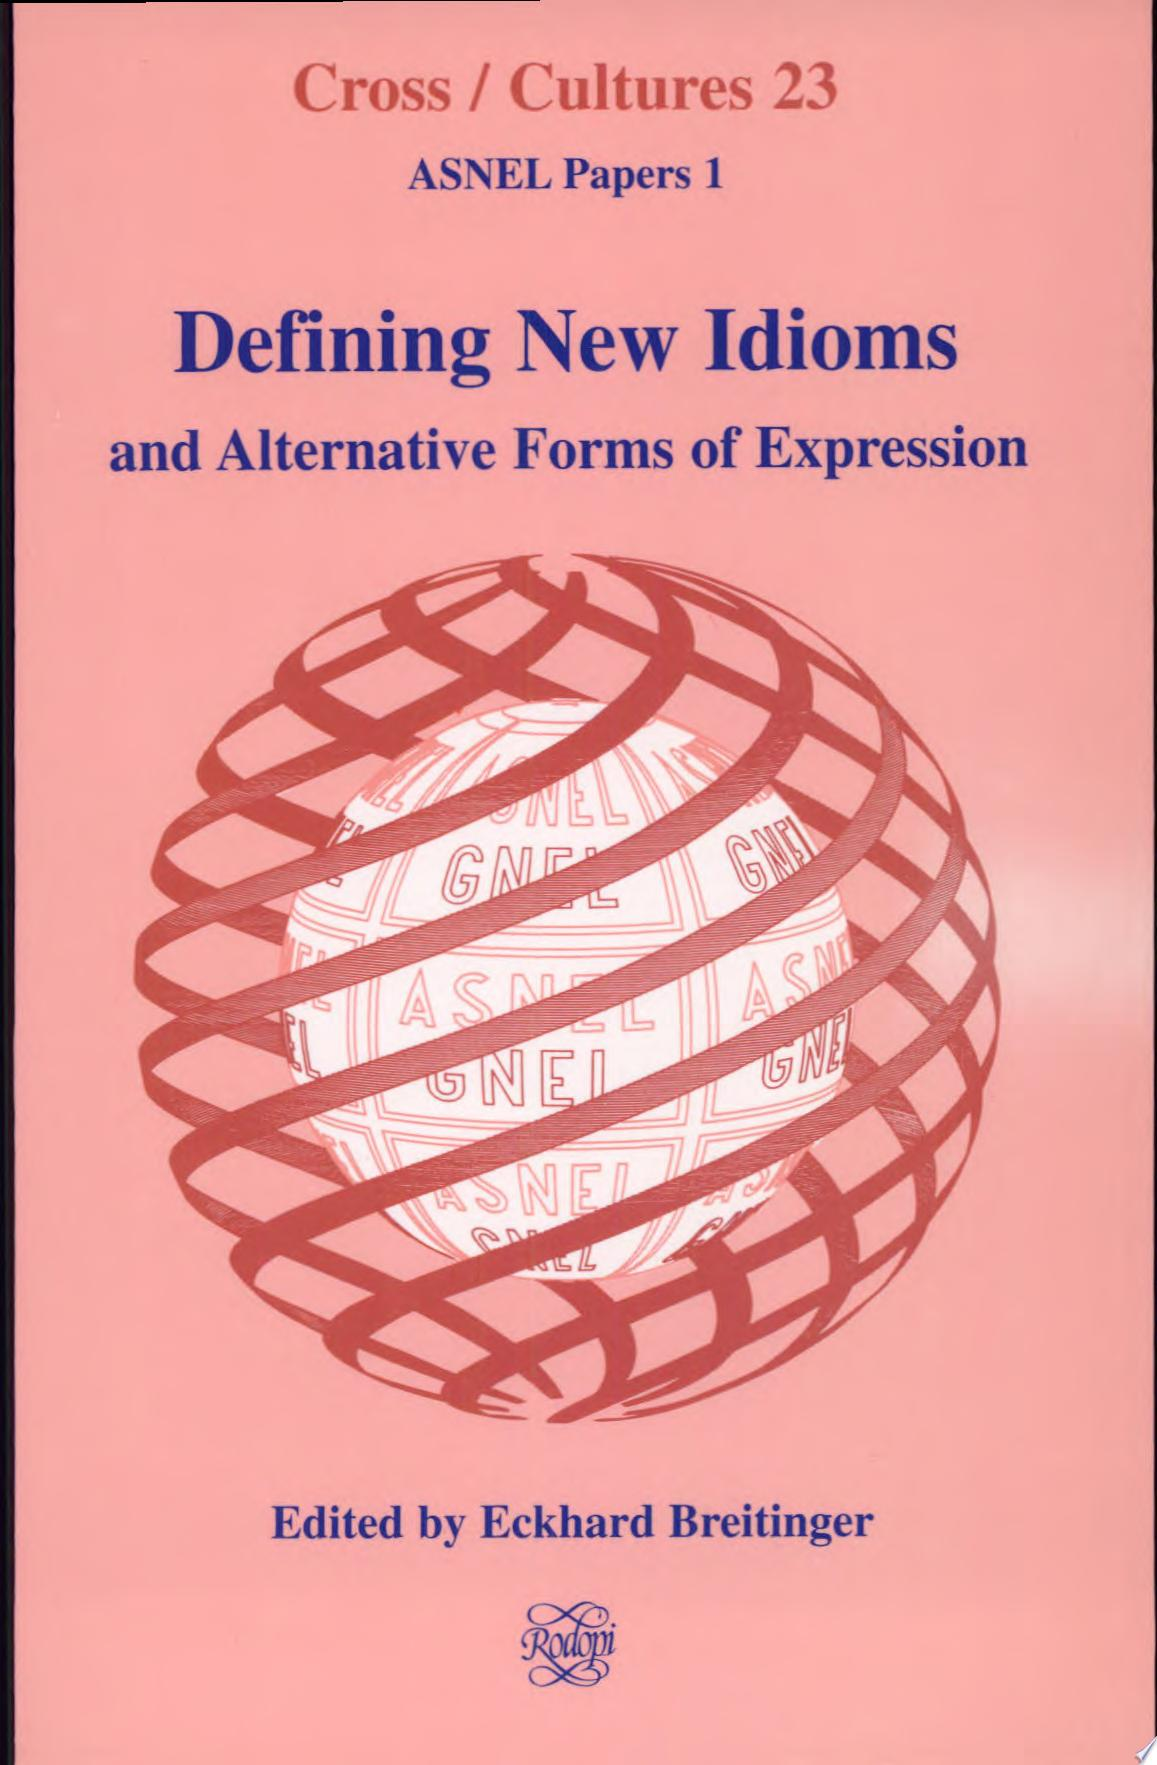 Defining New Idioms and Alternative Forms of Expression